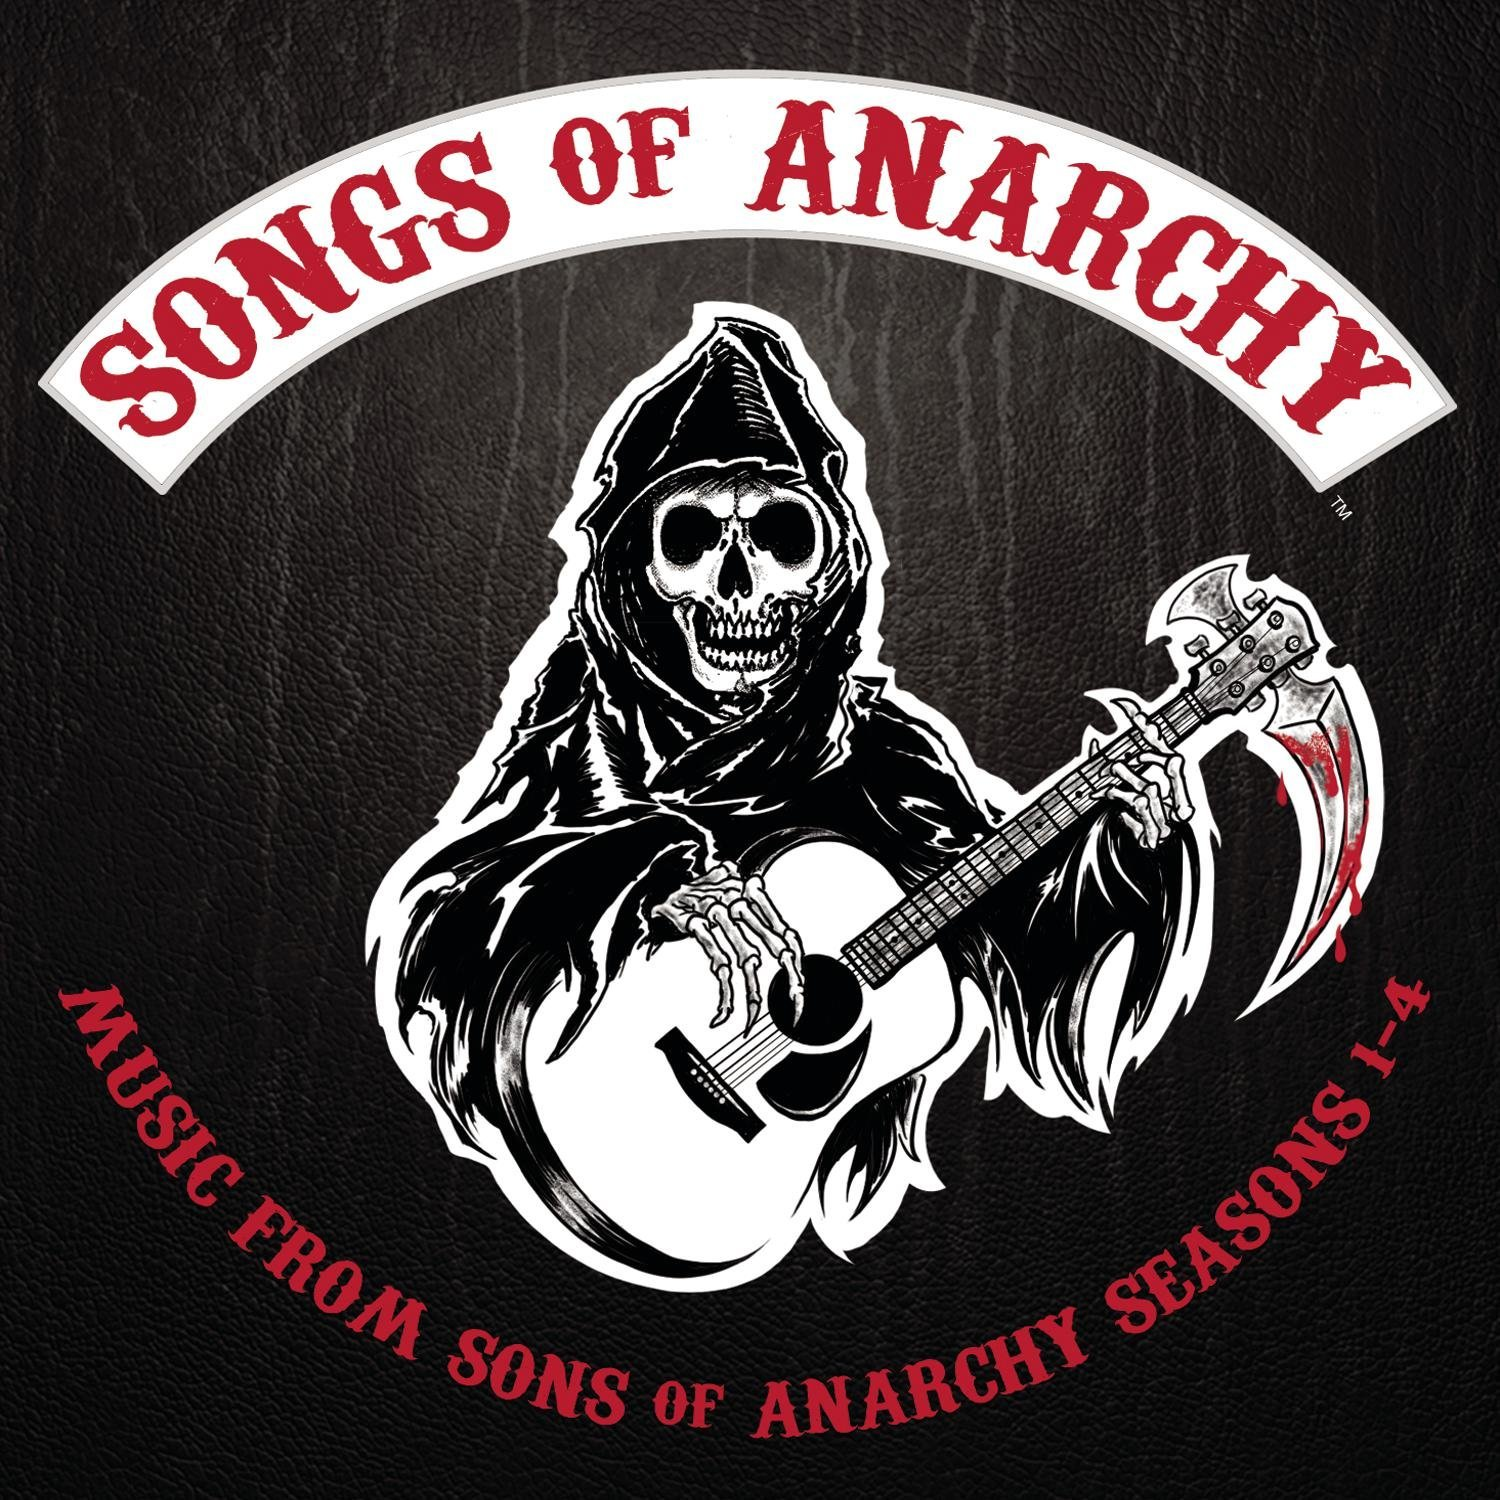 SONGS OF ANARCHY MUSIC FROM... 1-4 (CD)